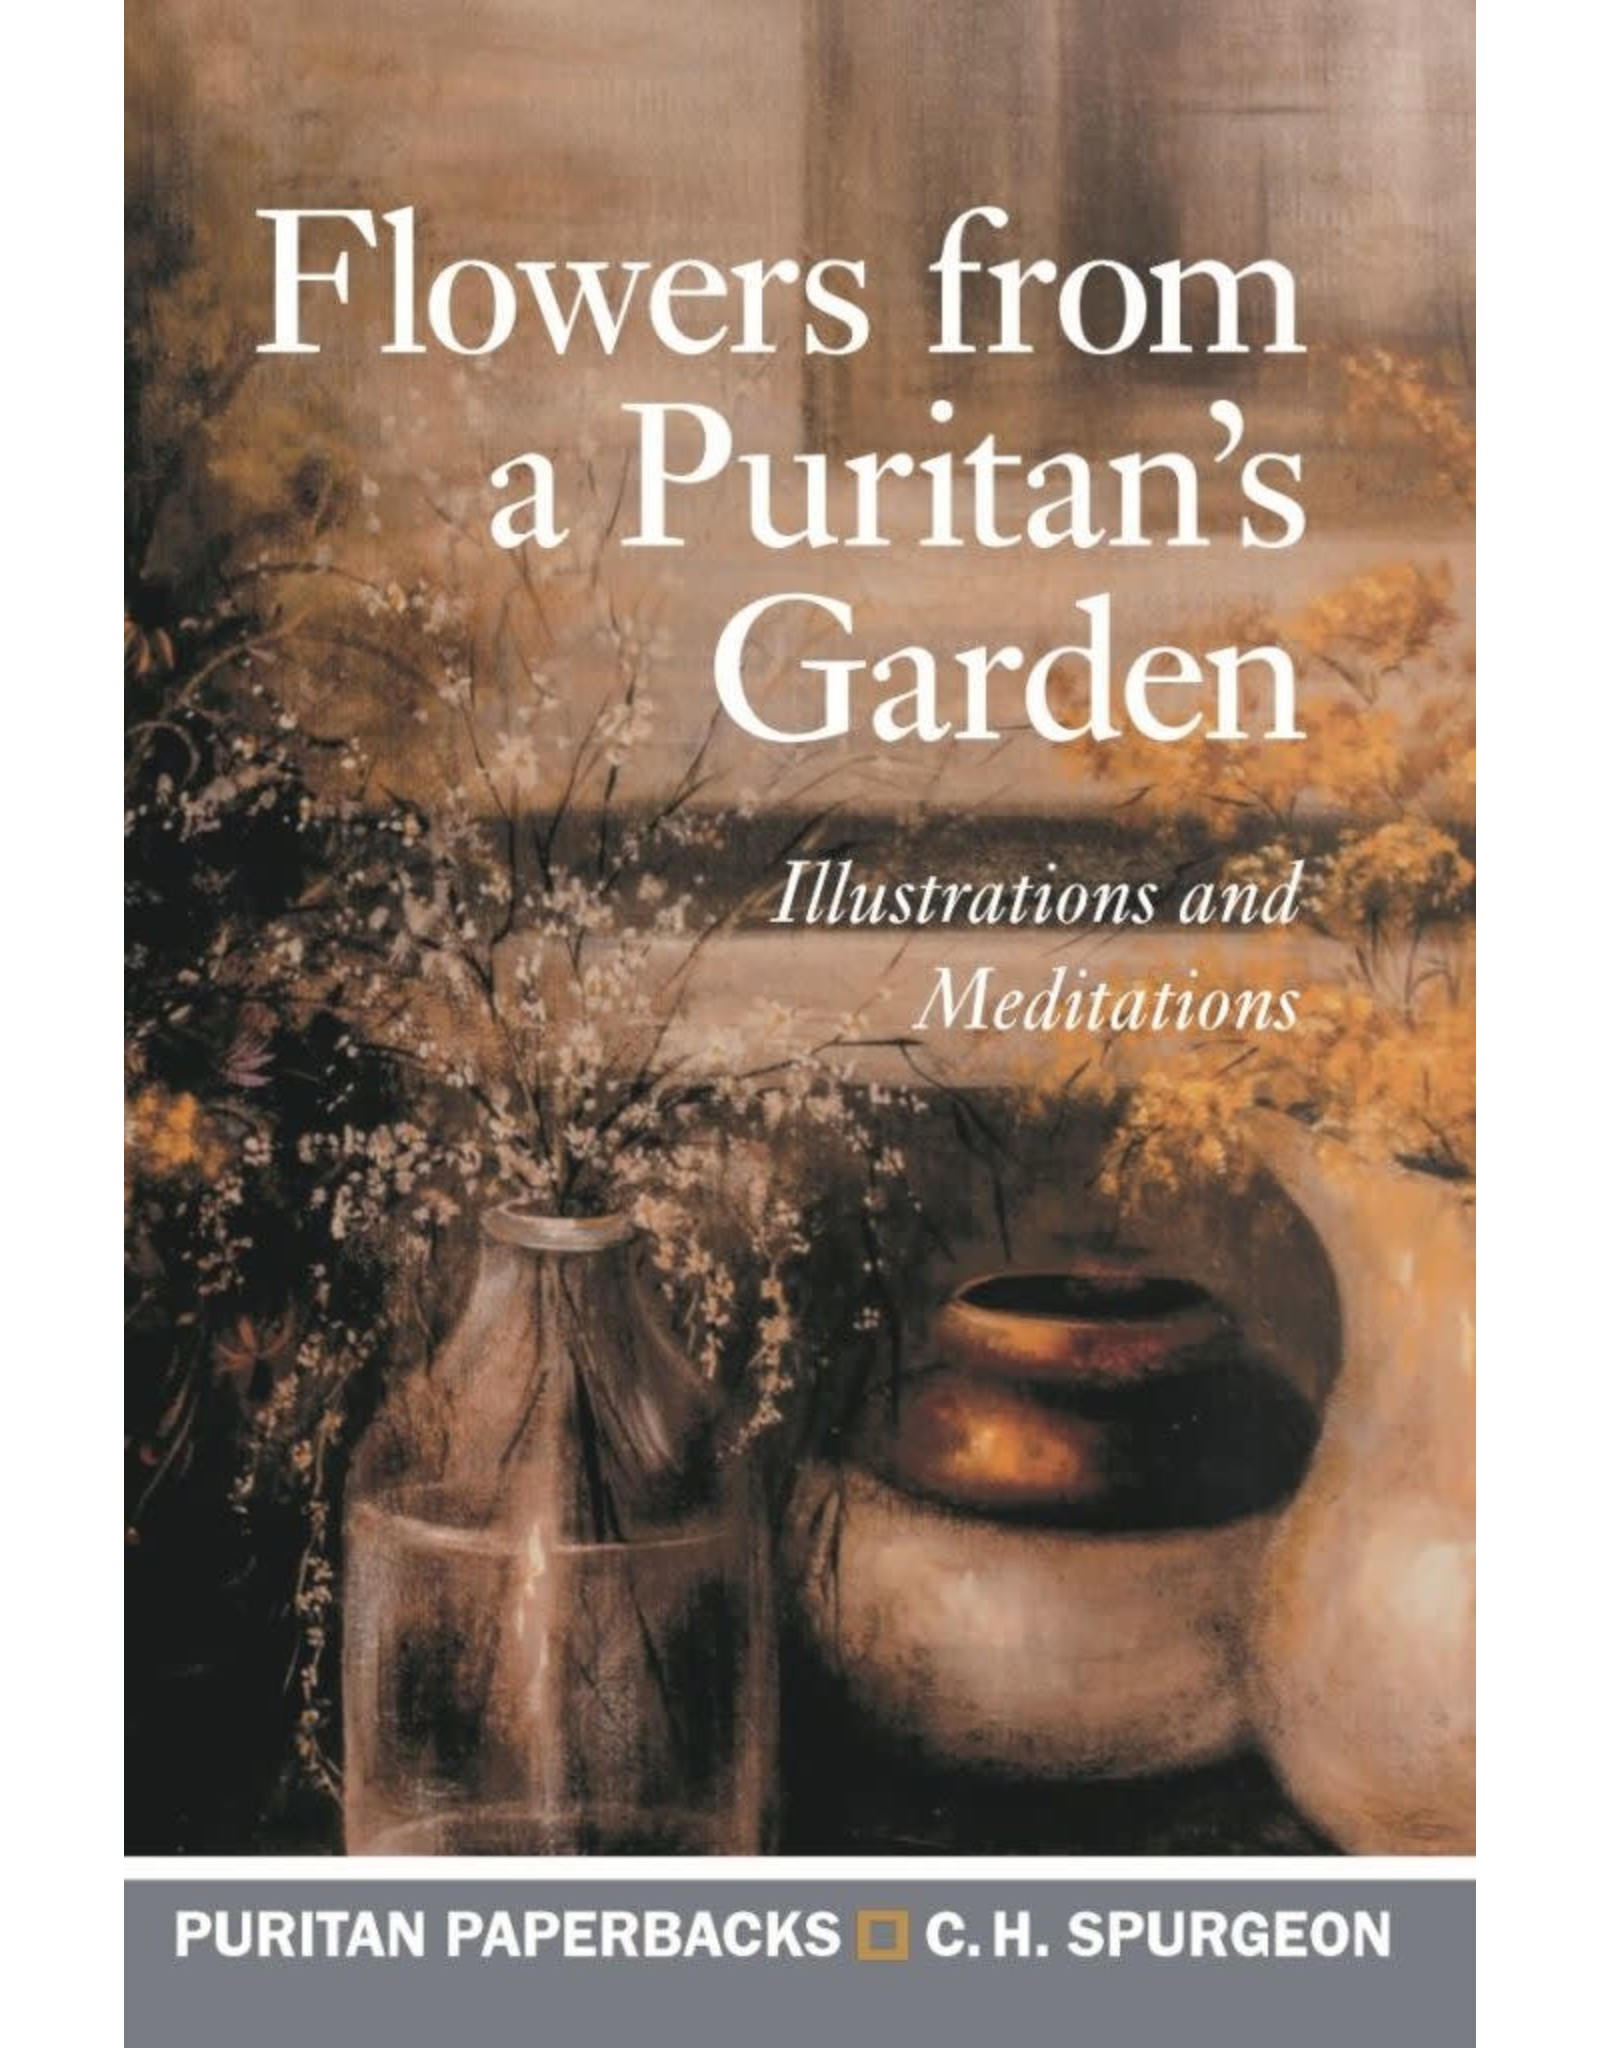 Spurgeon Flowers from a Puritans Garden (Puritan Paperbacks)